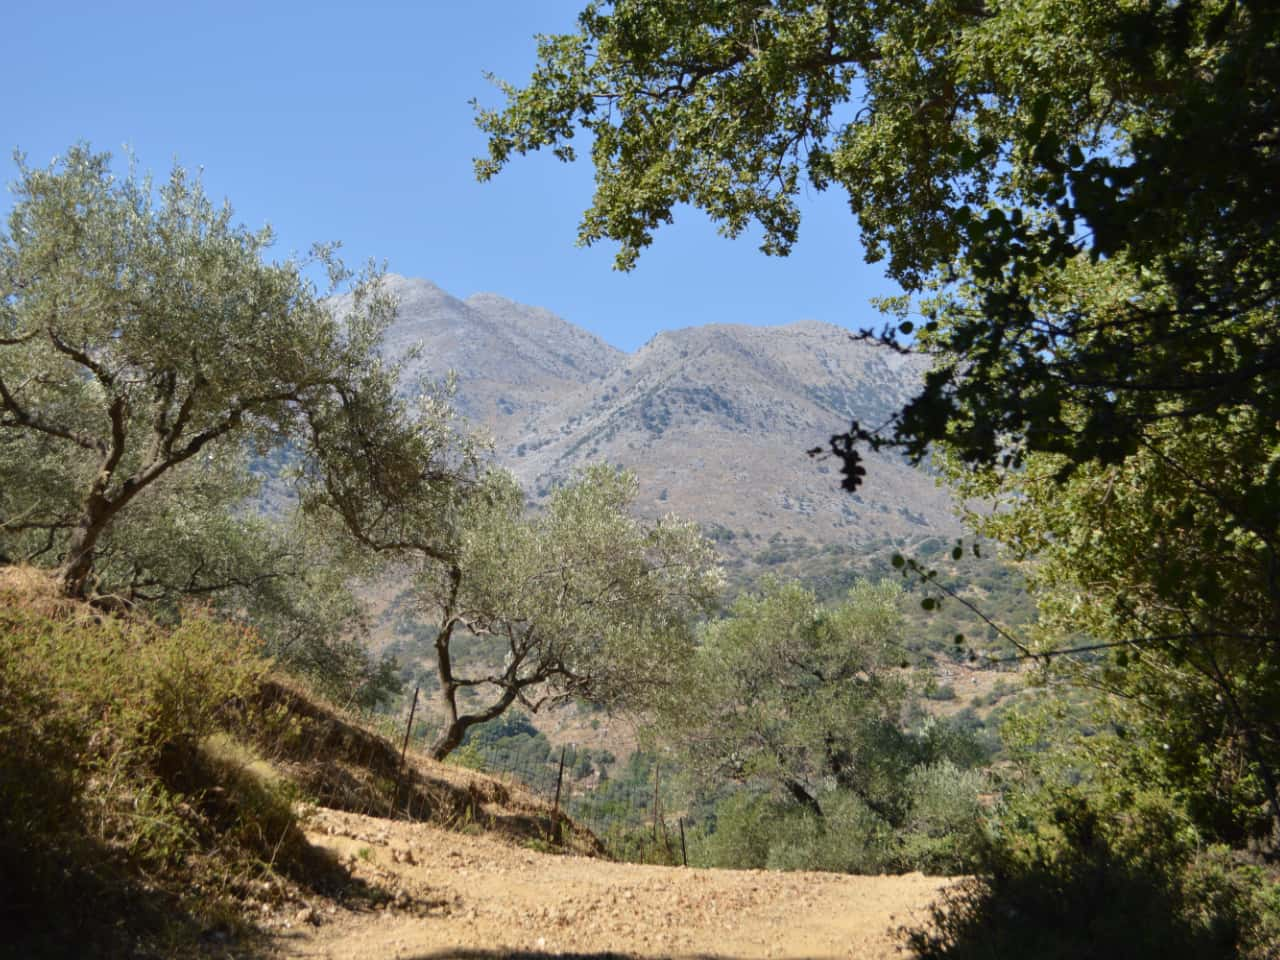 Half-Day Hiking Tour Kournas Village & Azilakas Path, hiking trekking crete activities, oak forest azilakas hiking, best activities chania crete, kournas lake village hiking tour, azilakas forest path crete, best hiking tours chania